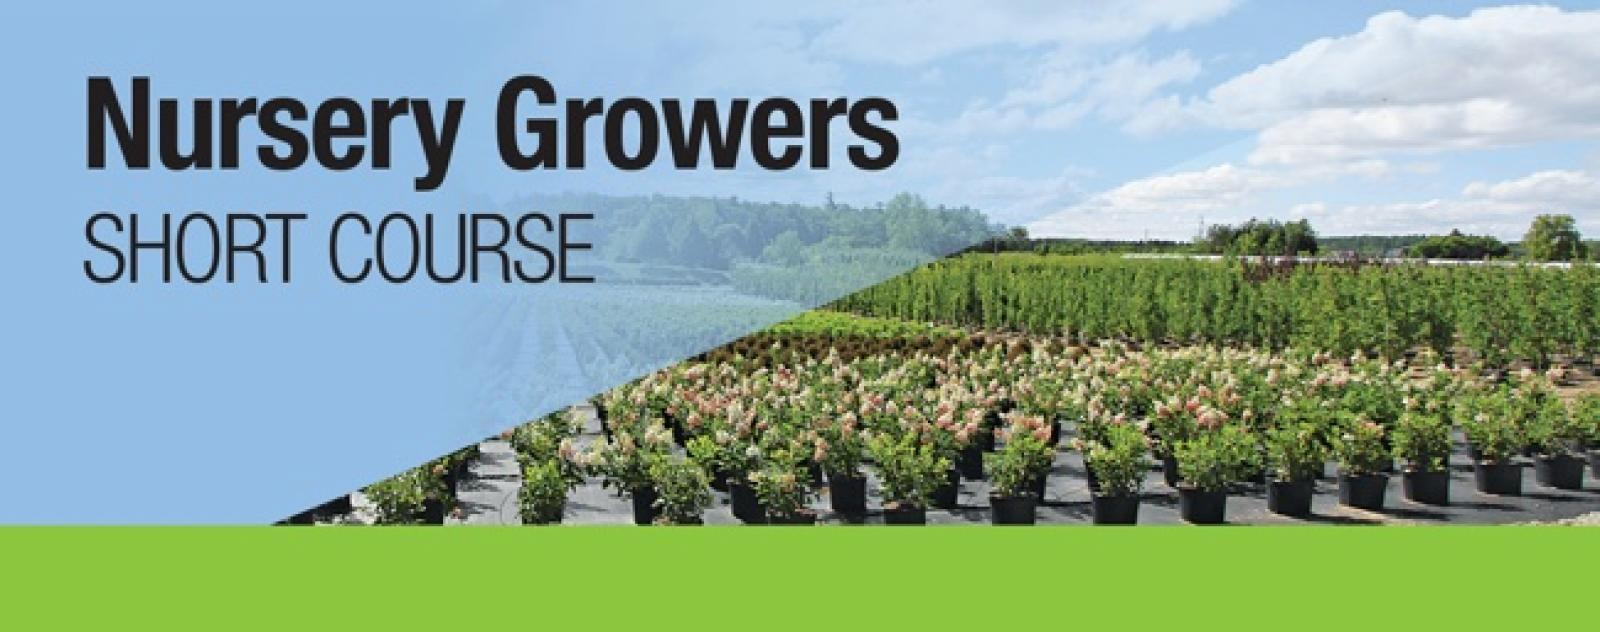 Nursery Growers Short Course